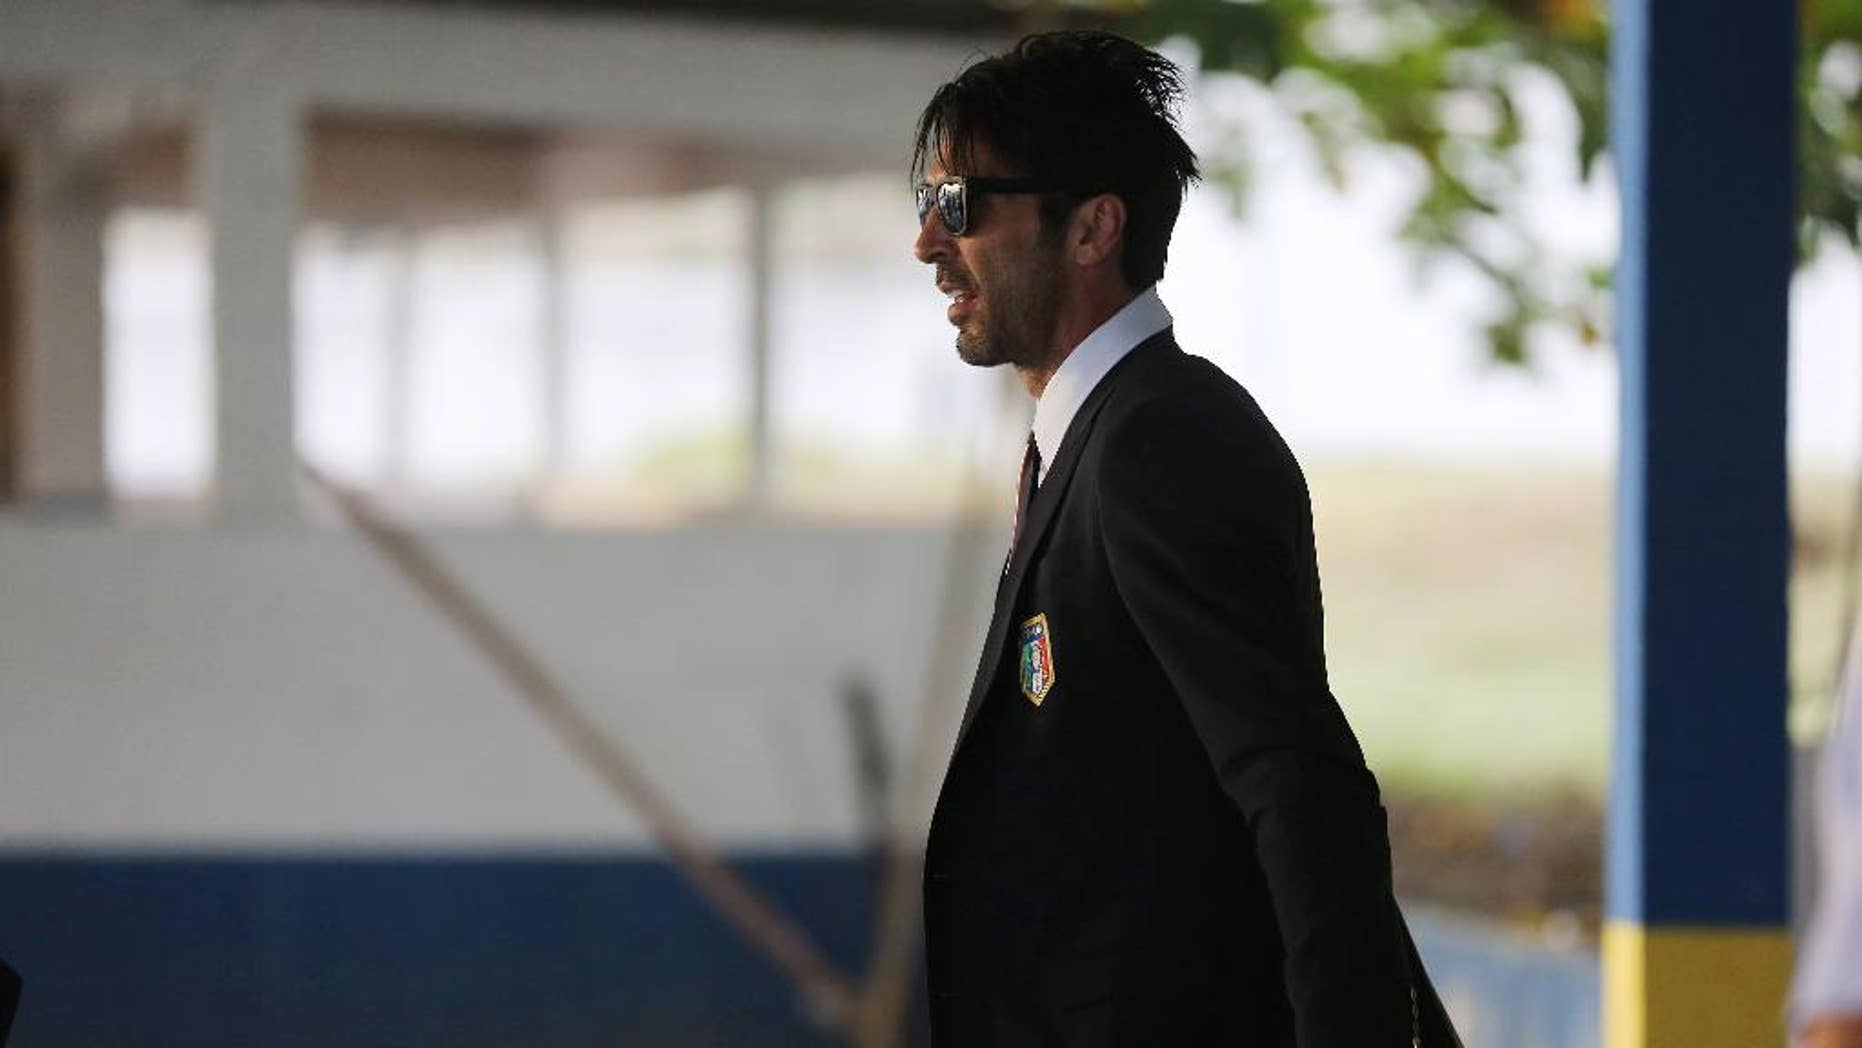 Italy's Gianluigi Buffon walks to his team's bus after arriving to the Galeao Air Base for the World Cup in Rio de Janeiro, Brazil, Friday, June 6, 2014. The Italian team will be based at a resort in Mangaratiba during the  World Cup. (AP Photo/Leo Correa)